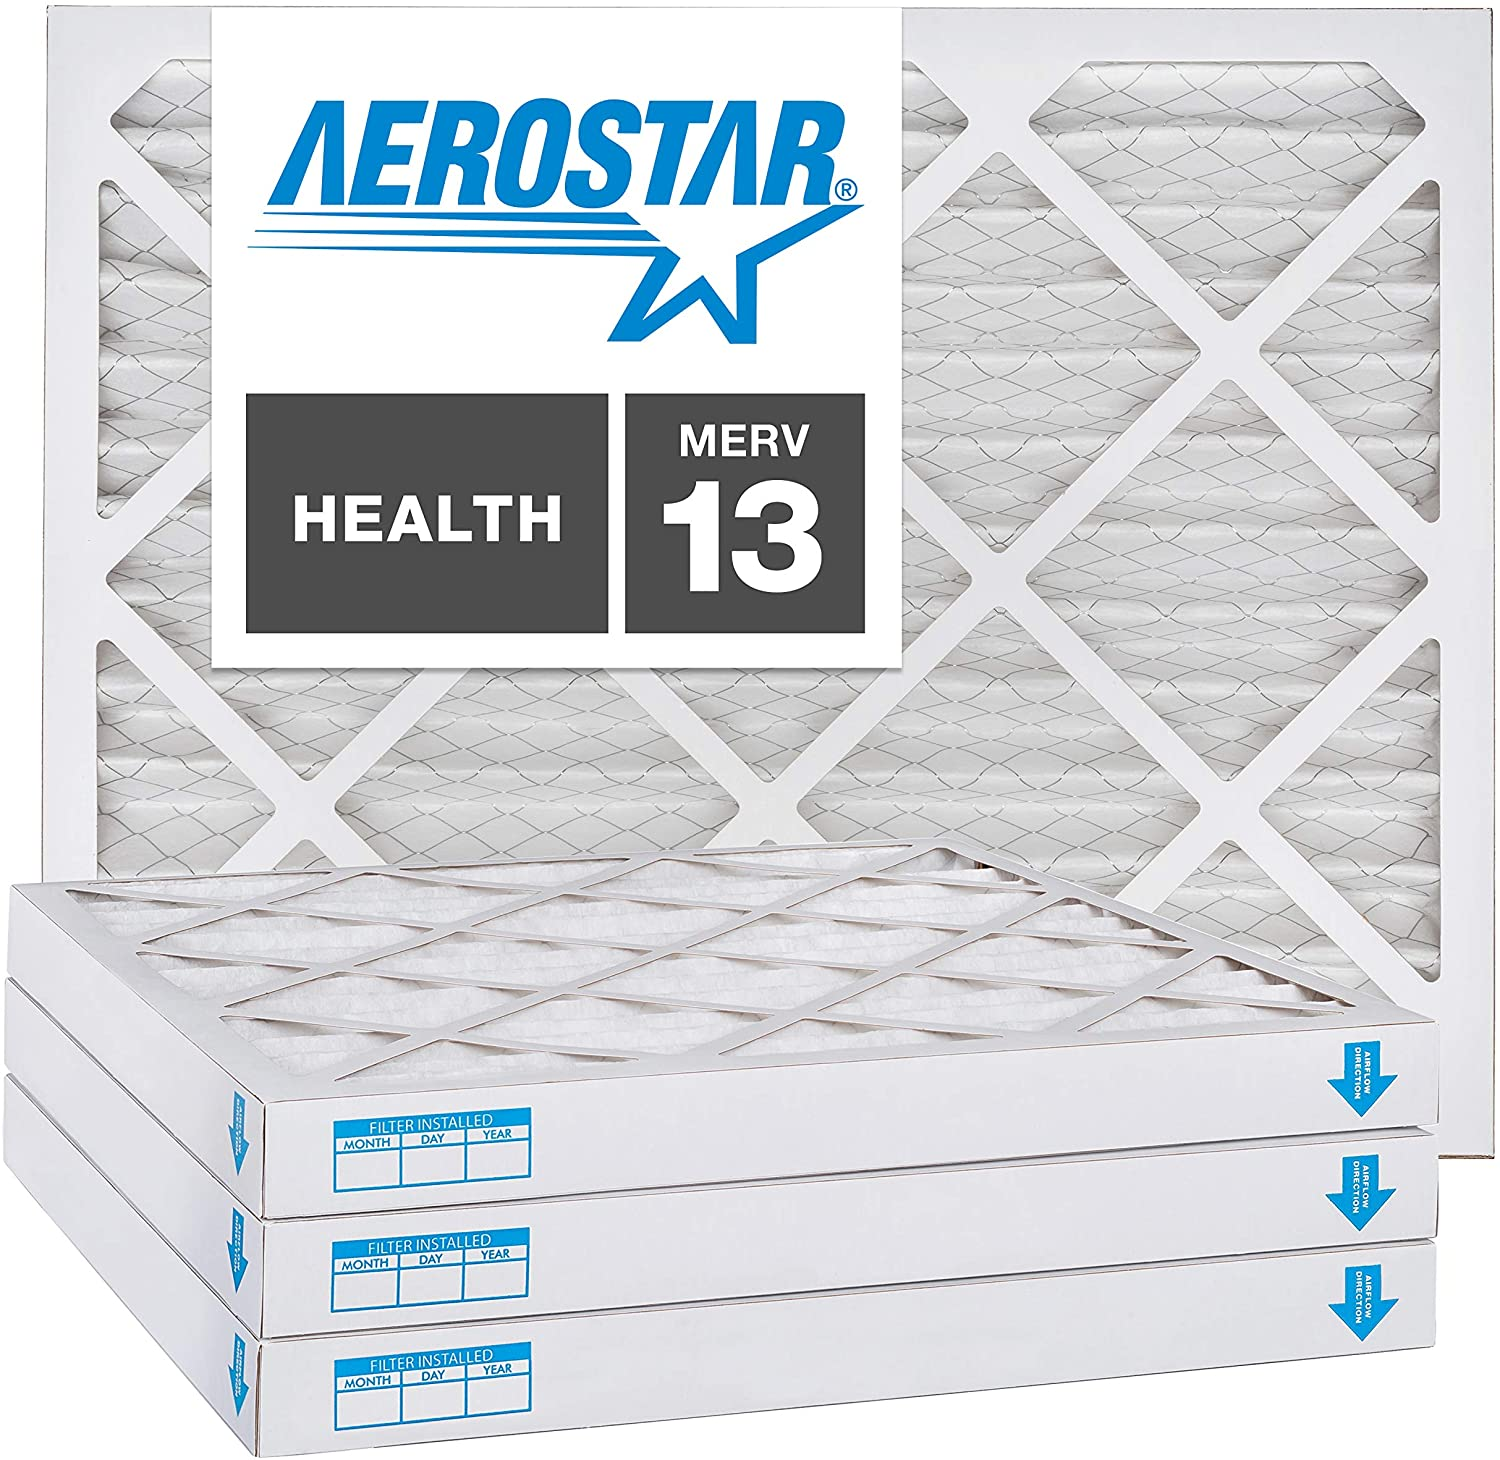 Aerostar 18x18x2 MERV 13, Pleated Air Filter, 18x18x2, Box of 4, Made in The USA